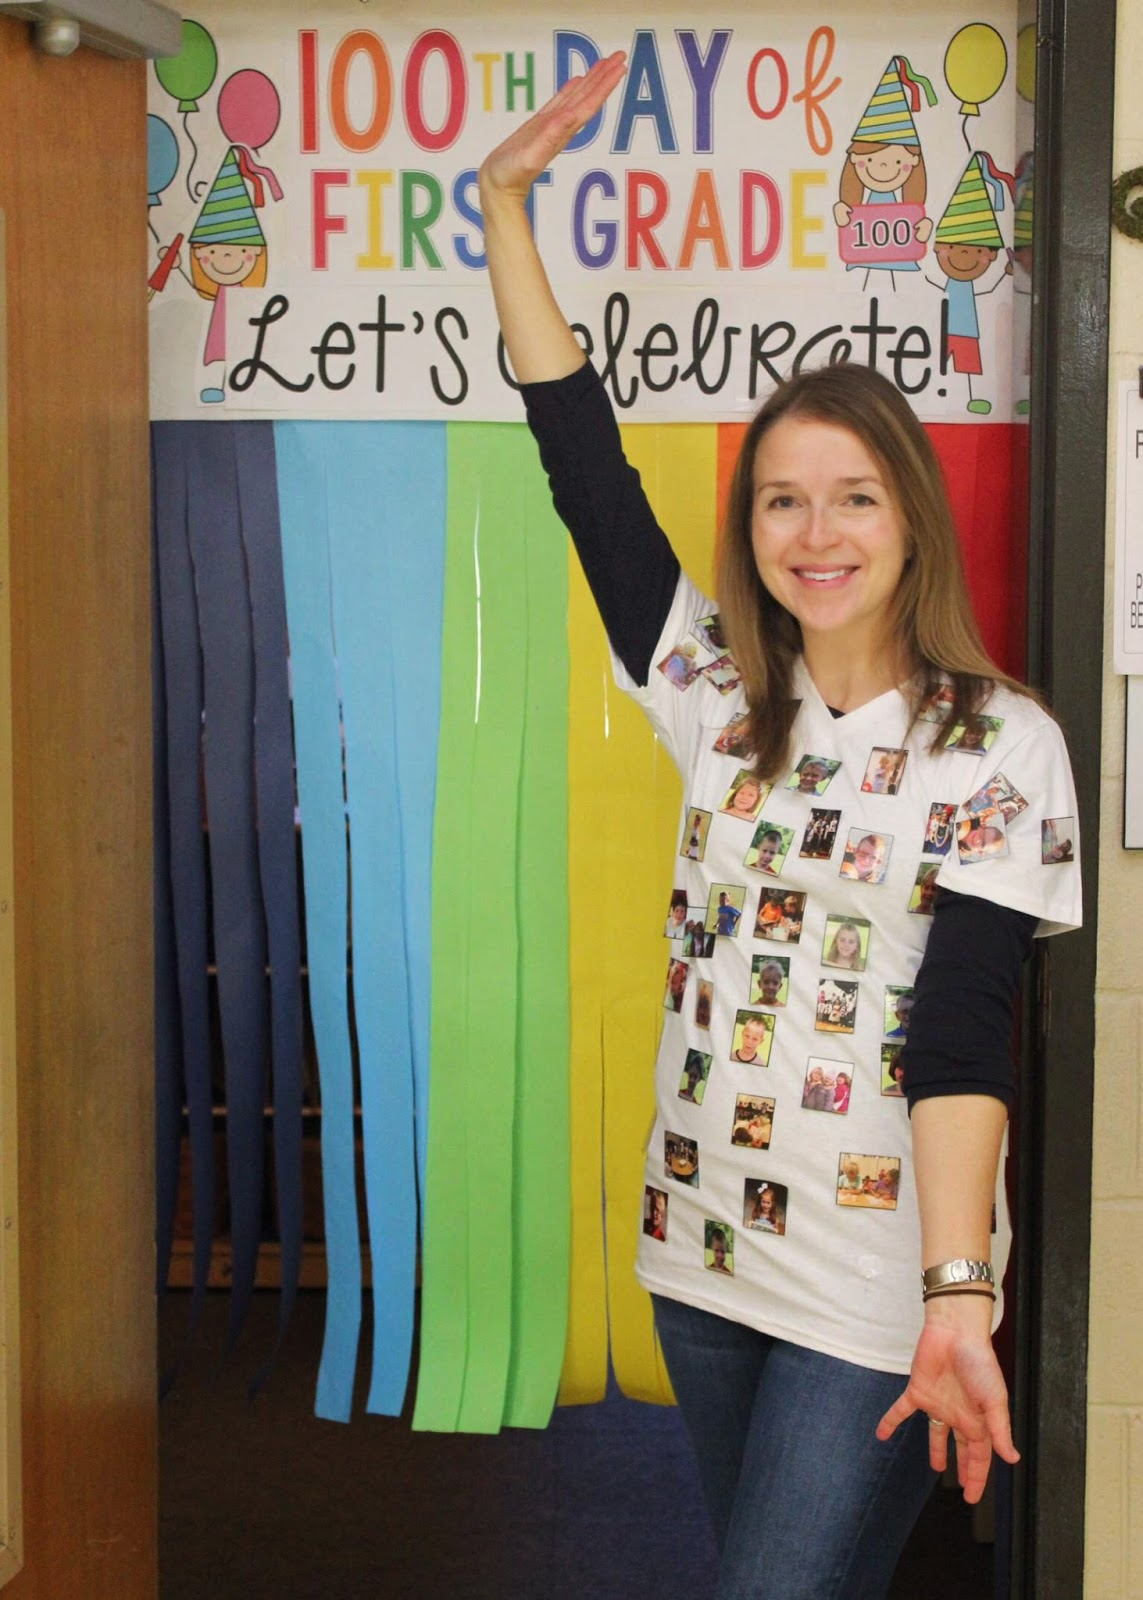 Download School Is a Happy Place: Let's Celebrate the 100th Day ...